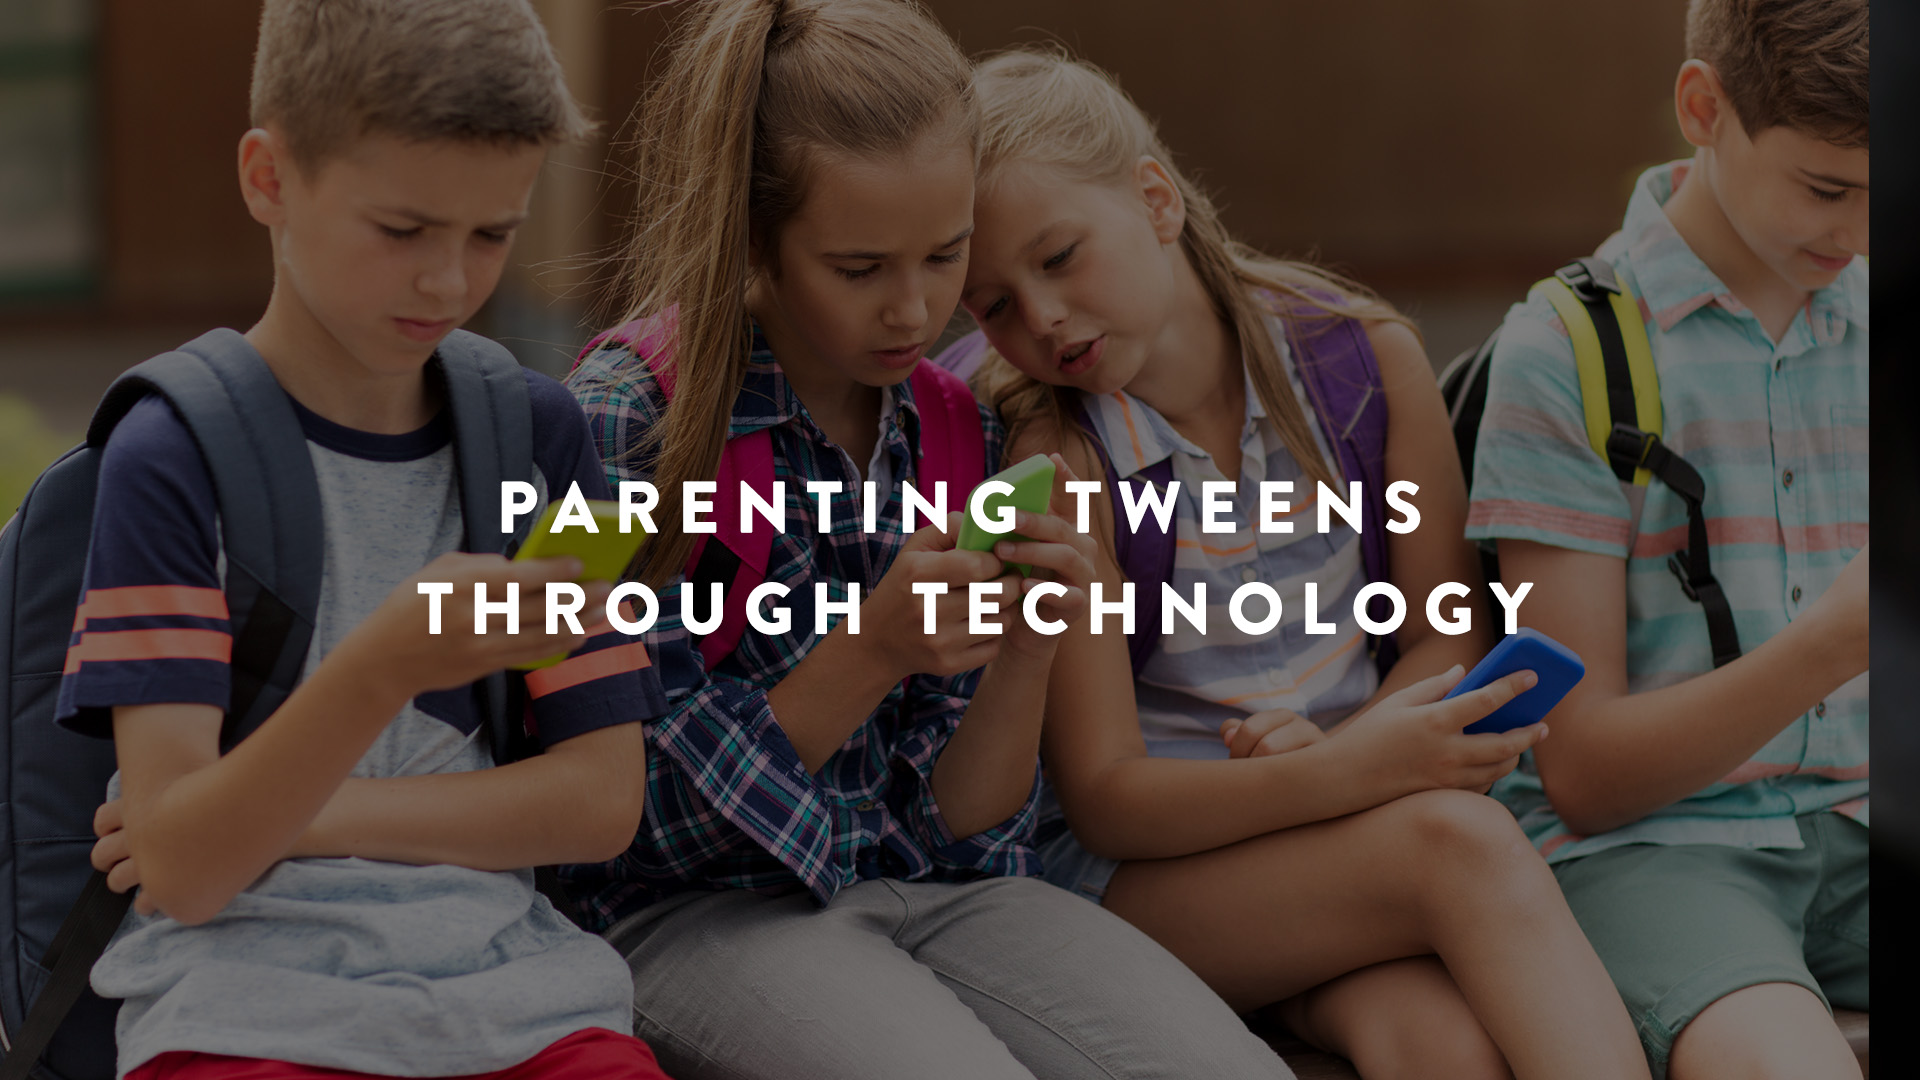 Parenting Tweens through technology